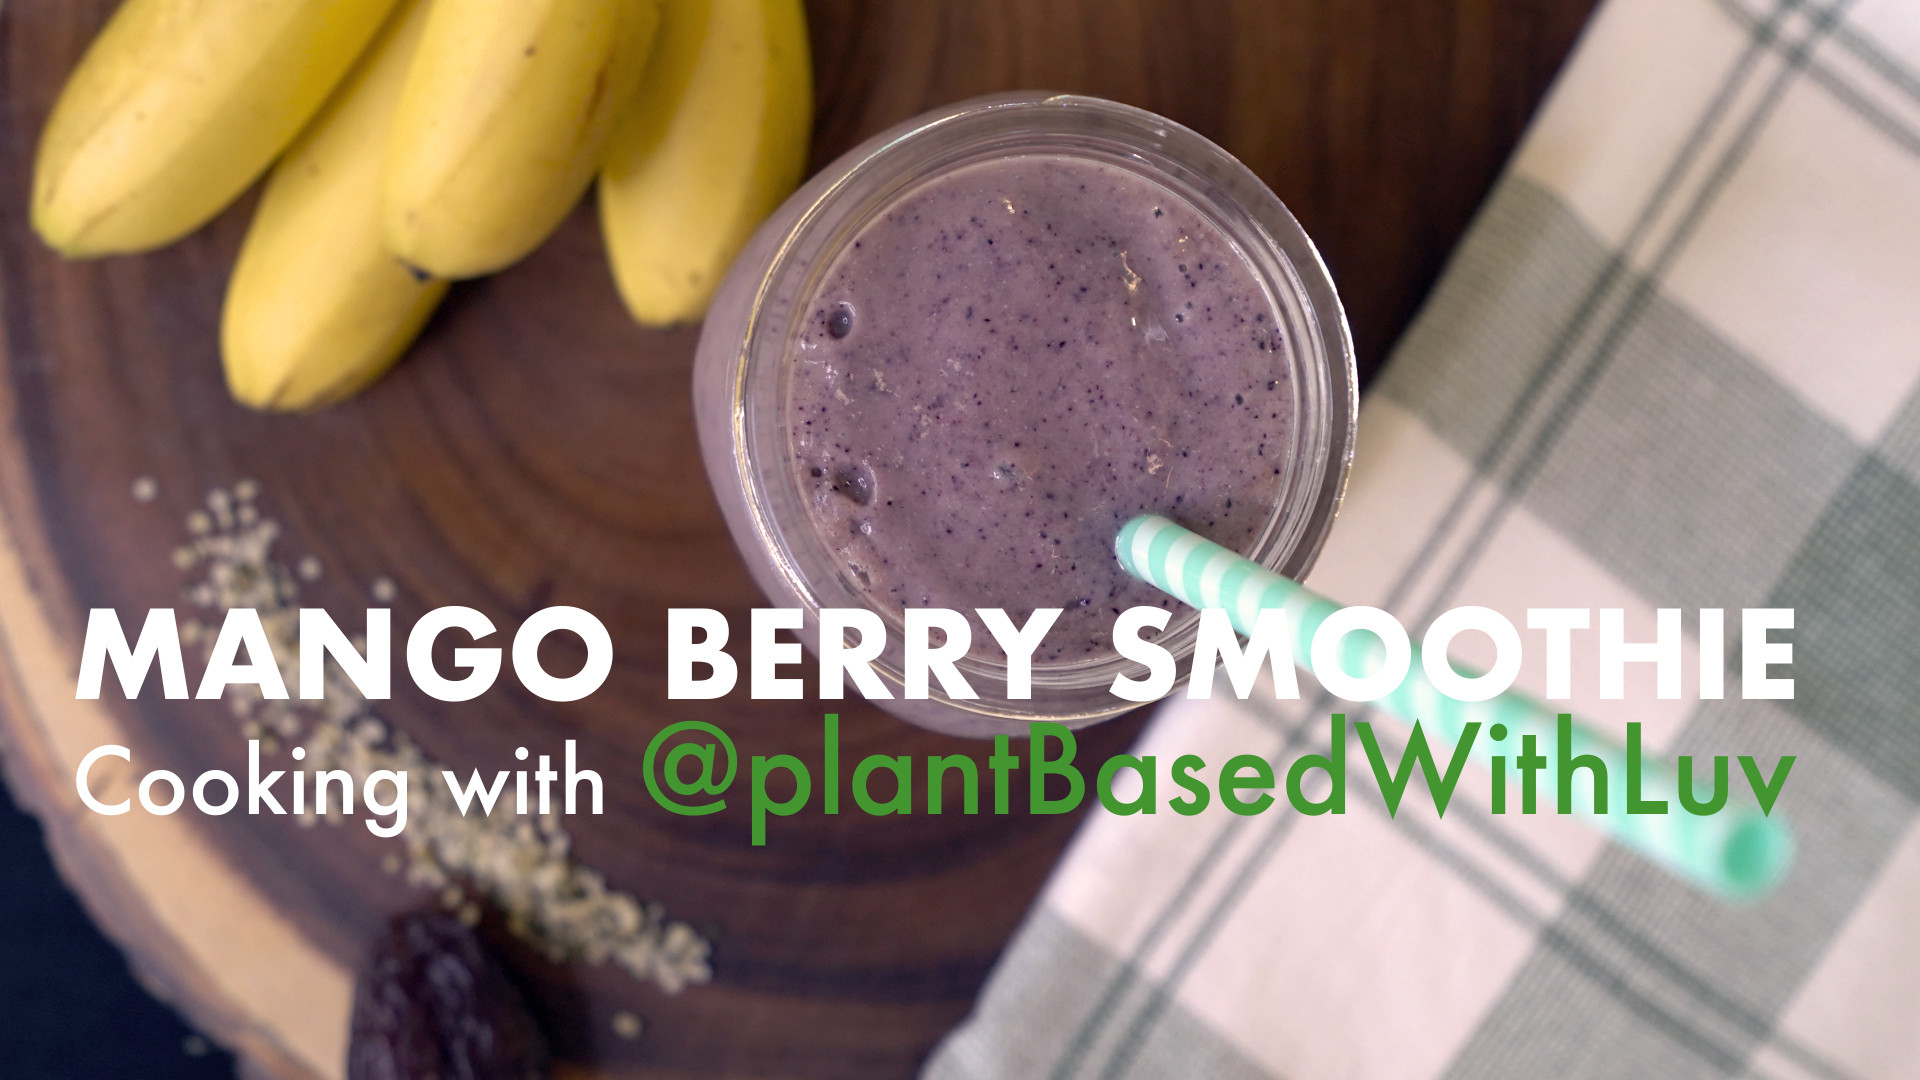 MANGO BERRY SMOOTHIE: PLANT-BASED WITH LUV